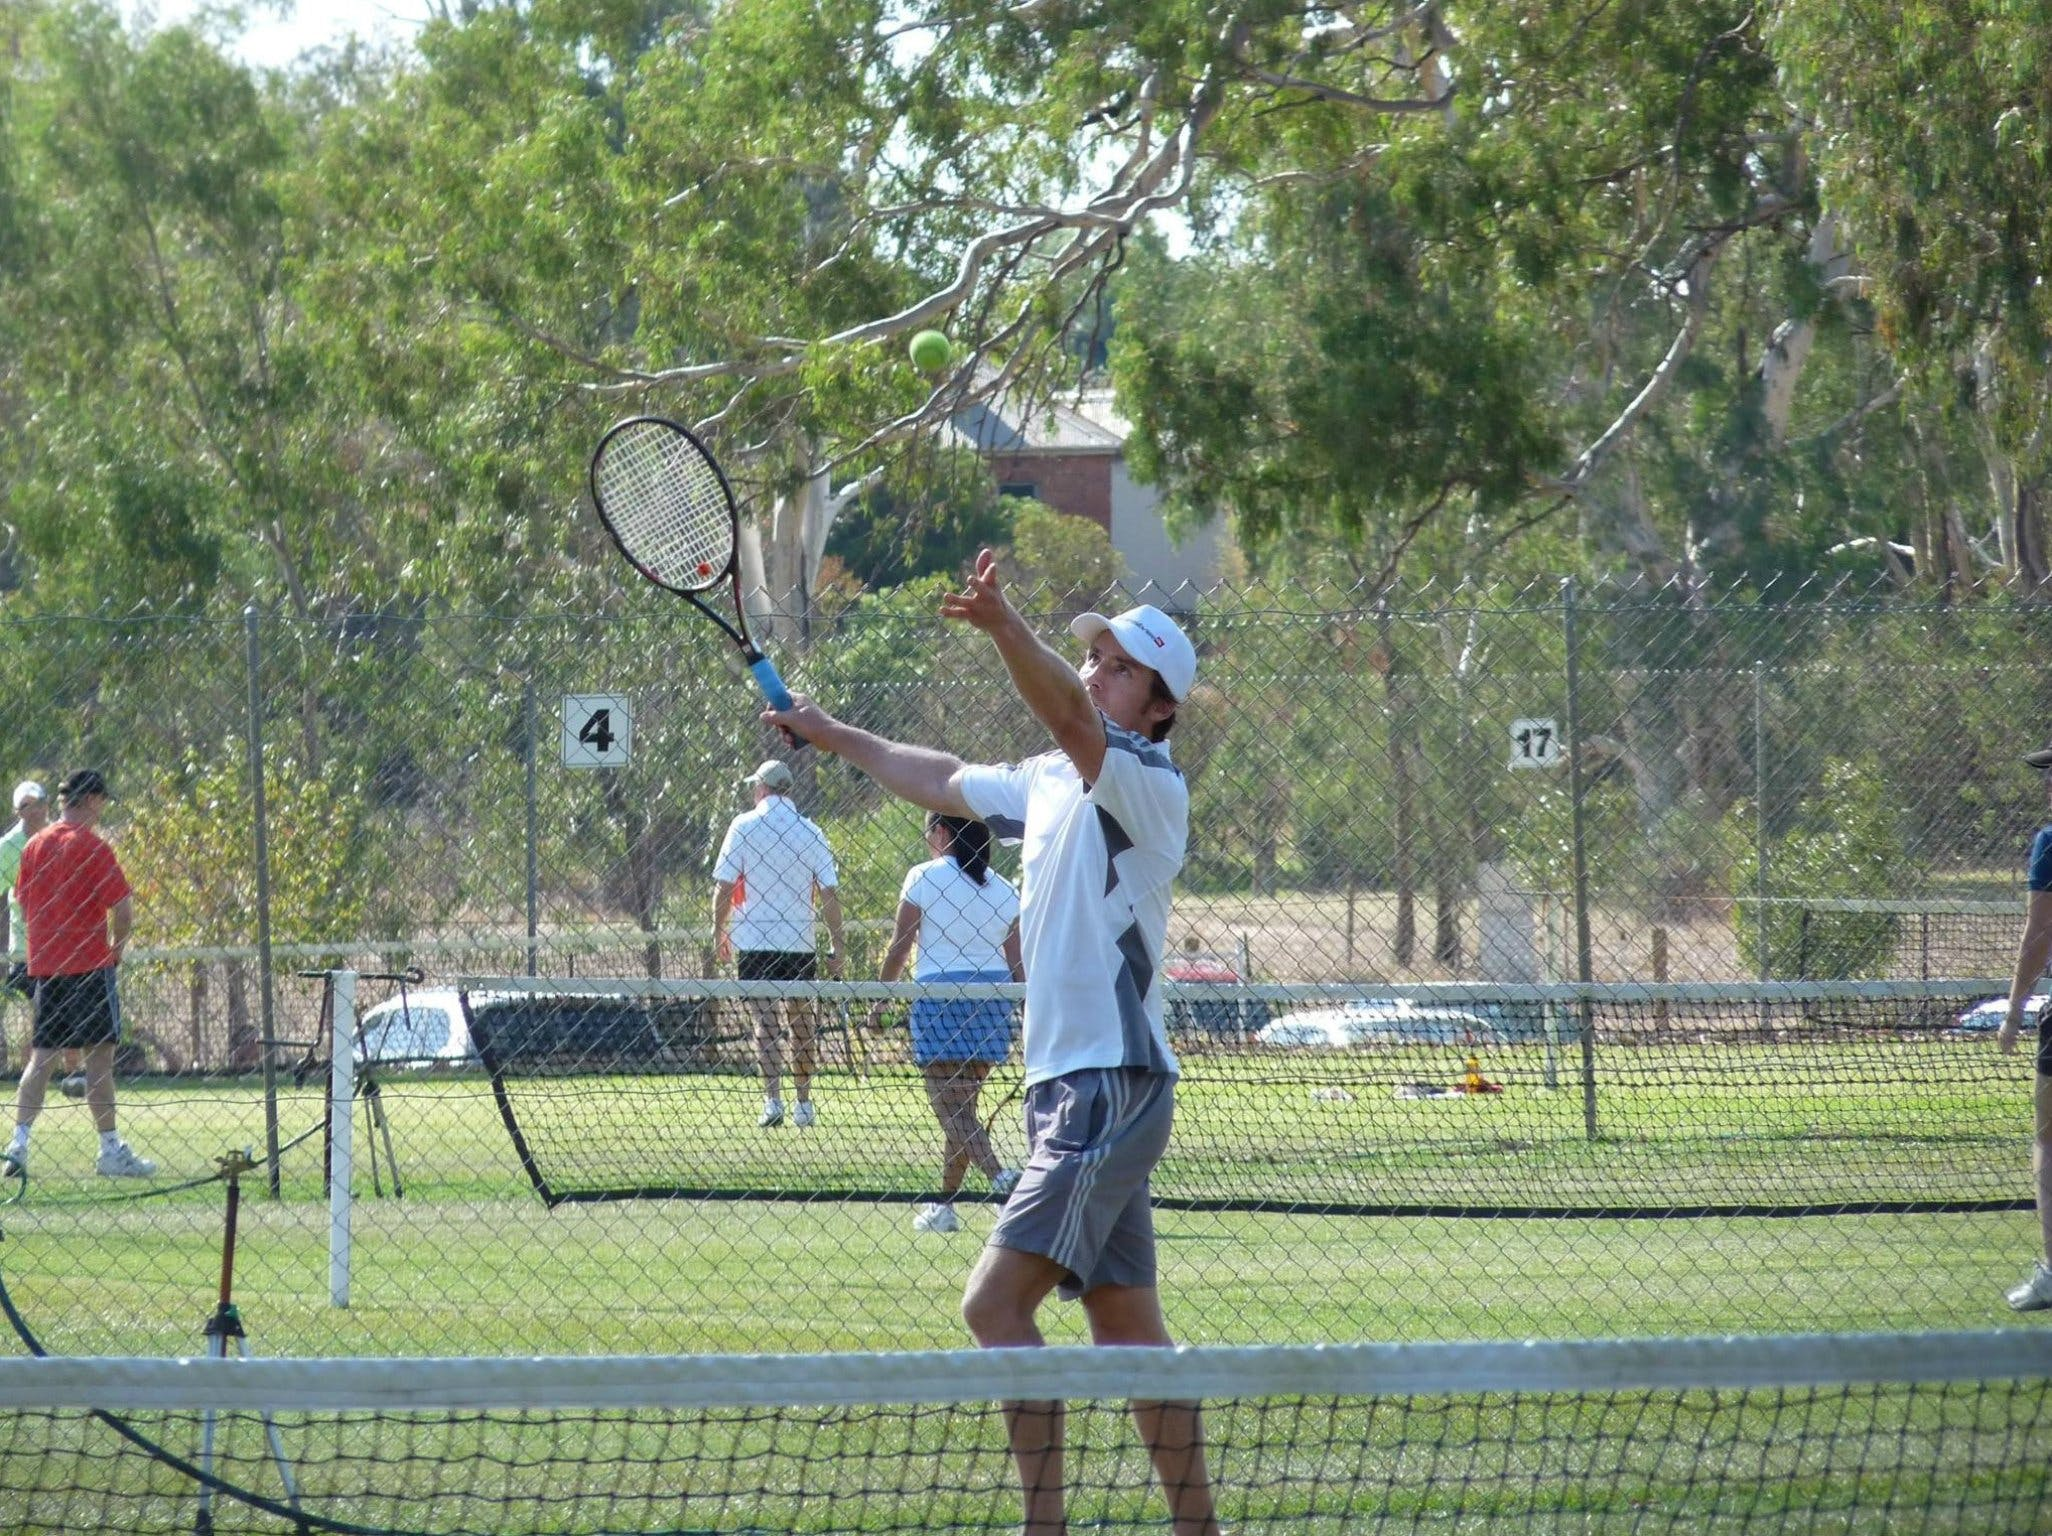 Corowa Easter Lawn Tennis Tournament - QLD Tourism